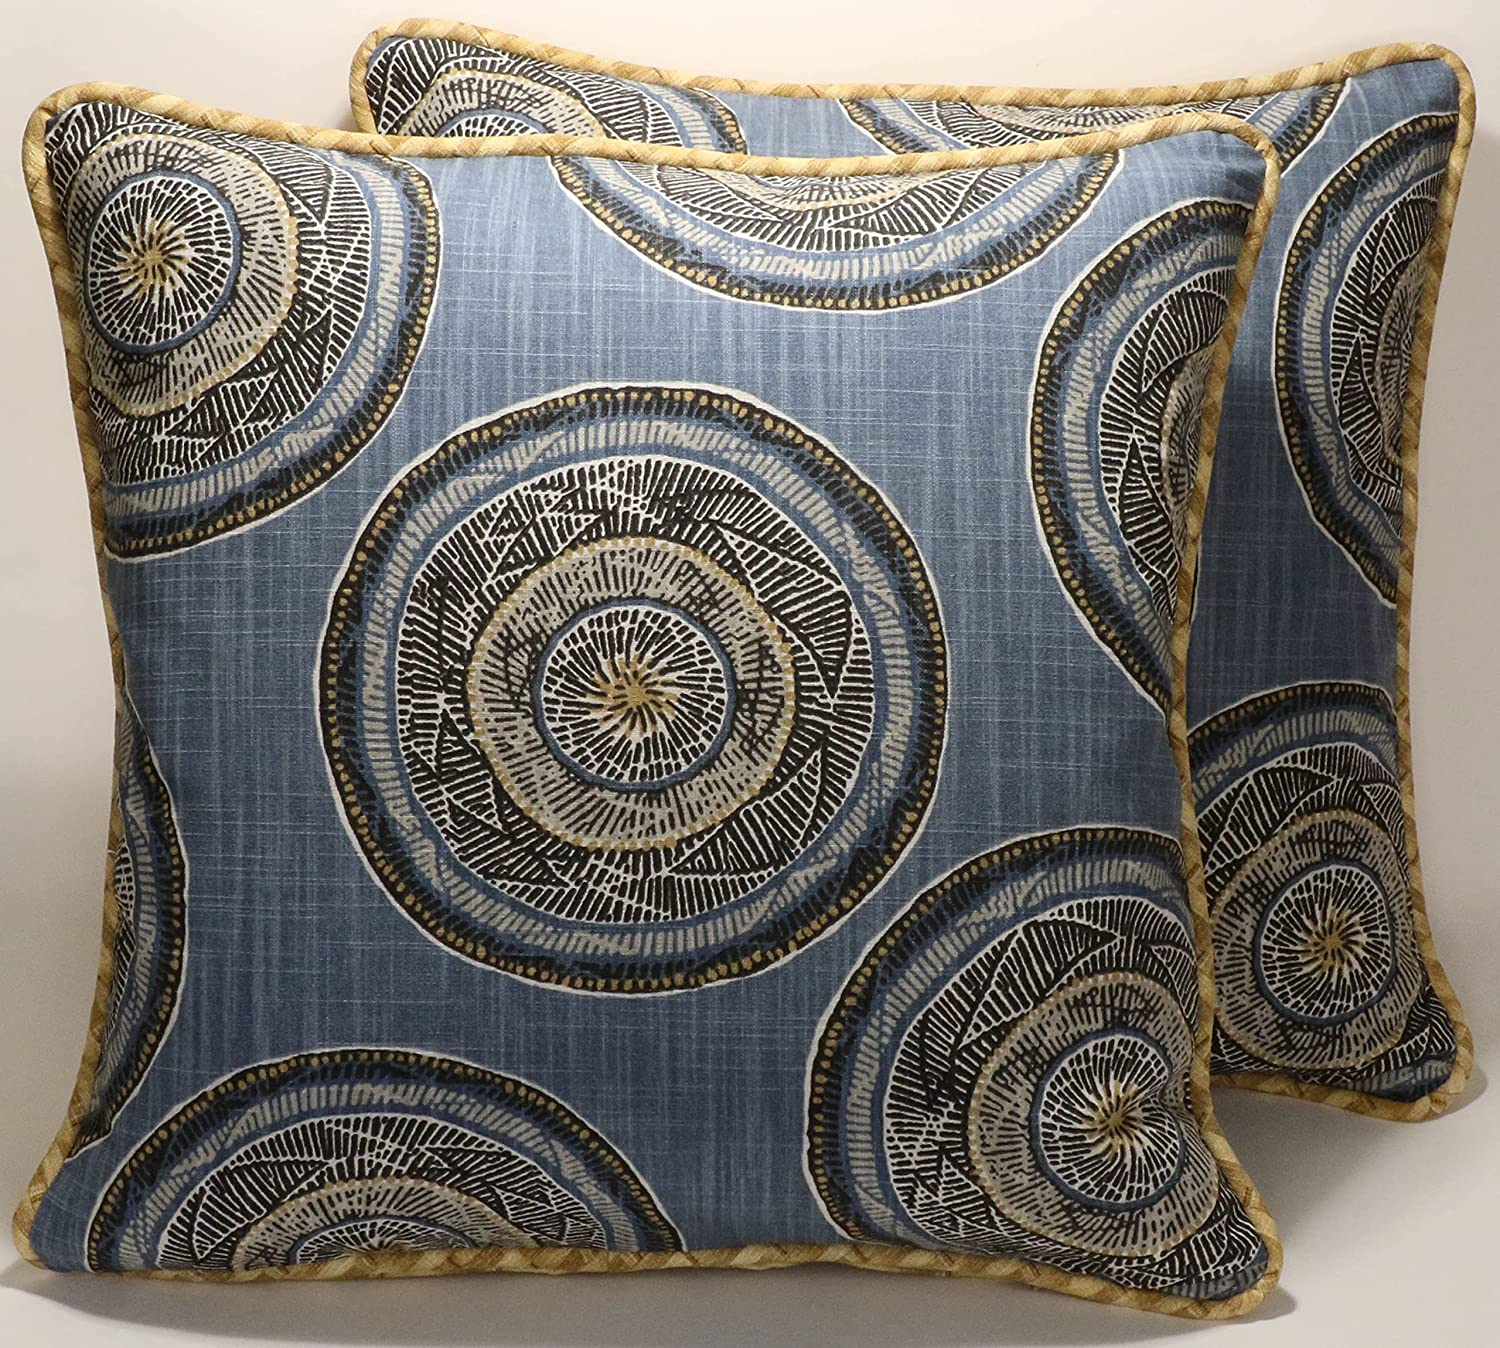 Blue Suzani Throw Pillow Cover Robert Allen Jambasa Greystone Shabby and Rustic Cushion Cover Home Decor Vintage Retro Fabric Set of 2 Pillowcases Decorative for Sofa Couch Bed Car Decor